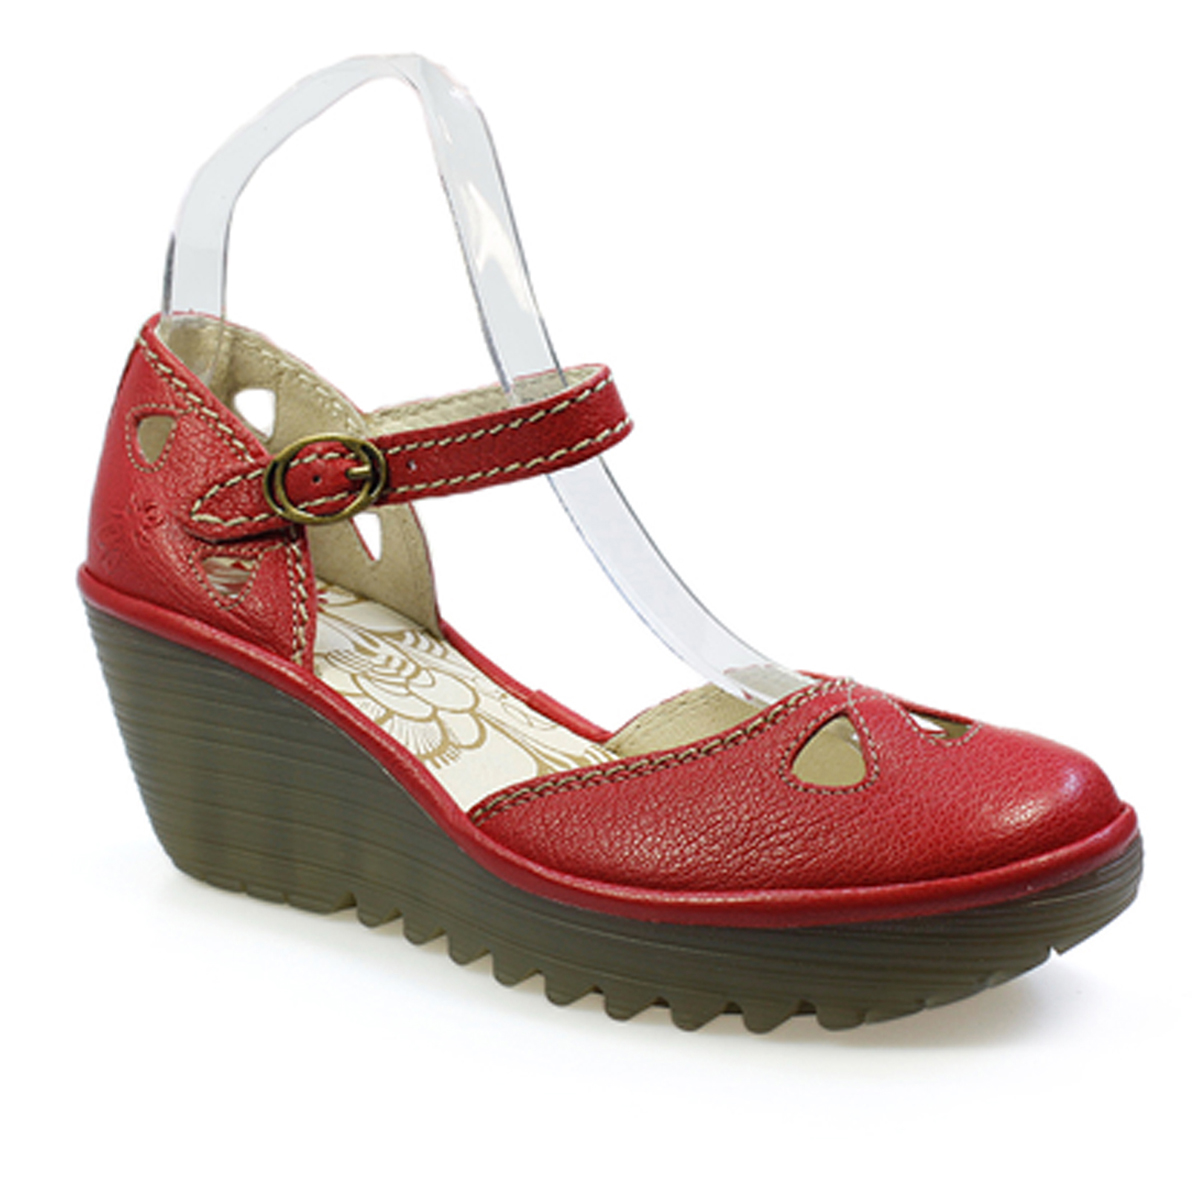 Fly London Yuna Women Ruby Red Leather Wedge Sandals - Fly London Yuna Women Ruby Red Leather Wedge Sandals EBay